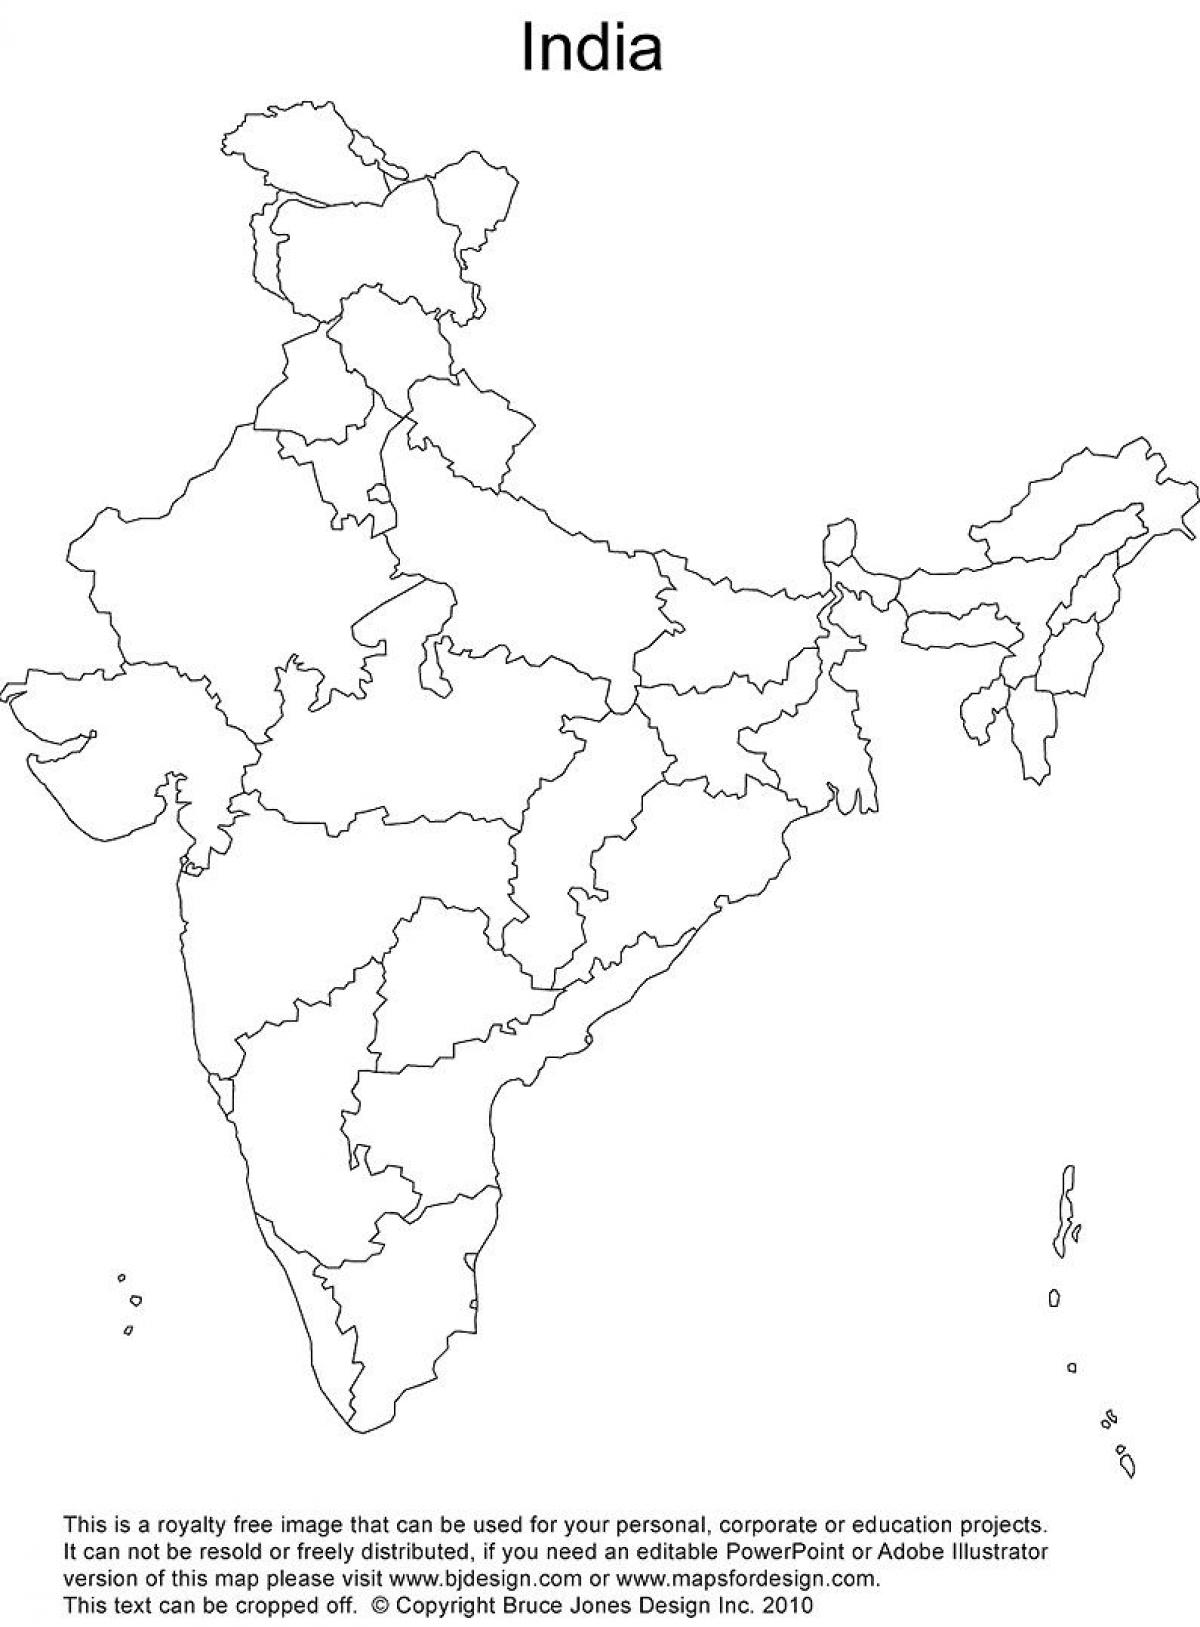 Printable outline map of india india outline map printable india outline map printable sciox Choice Image